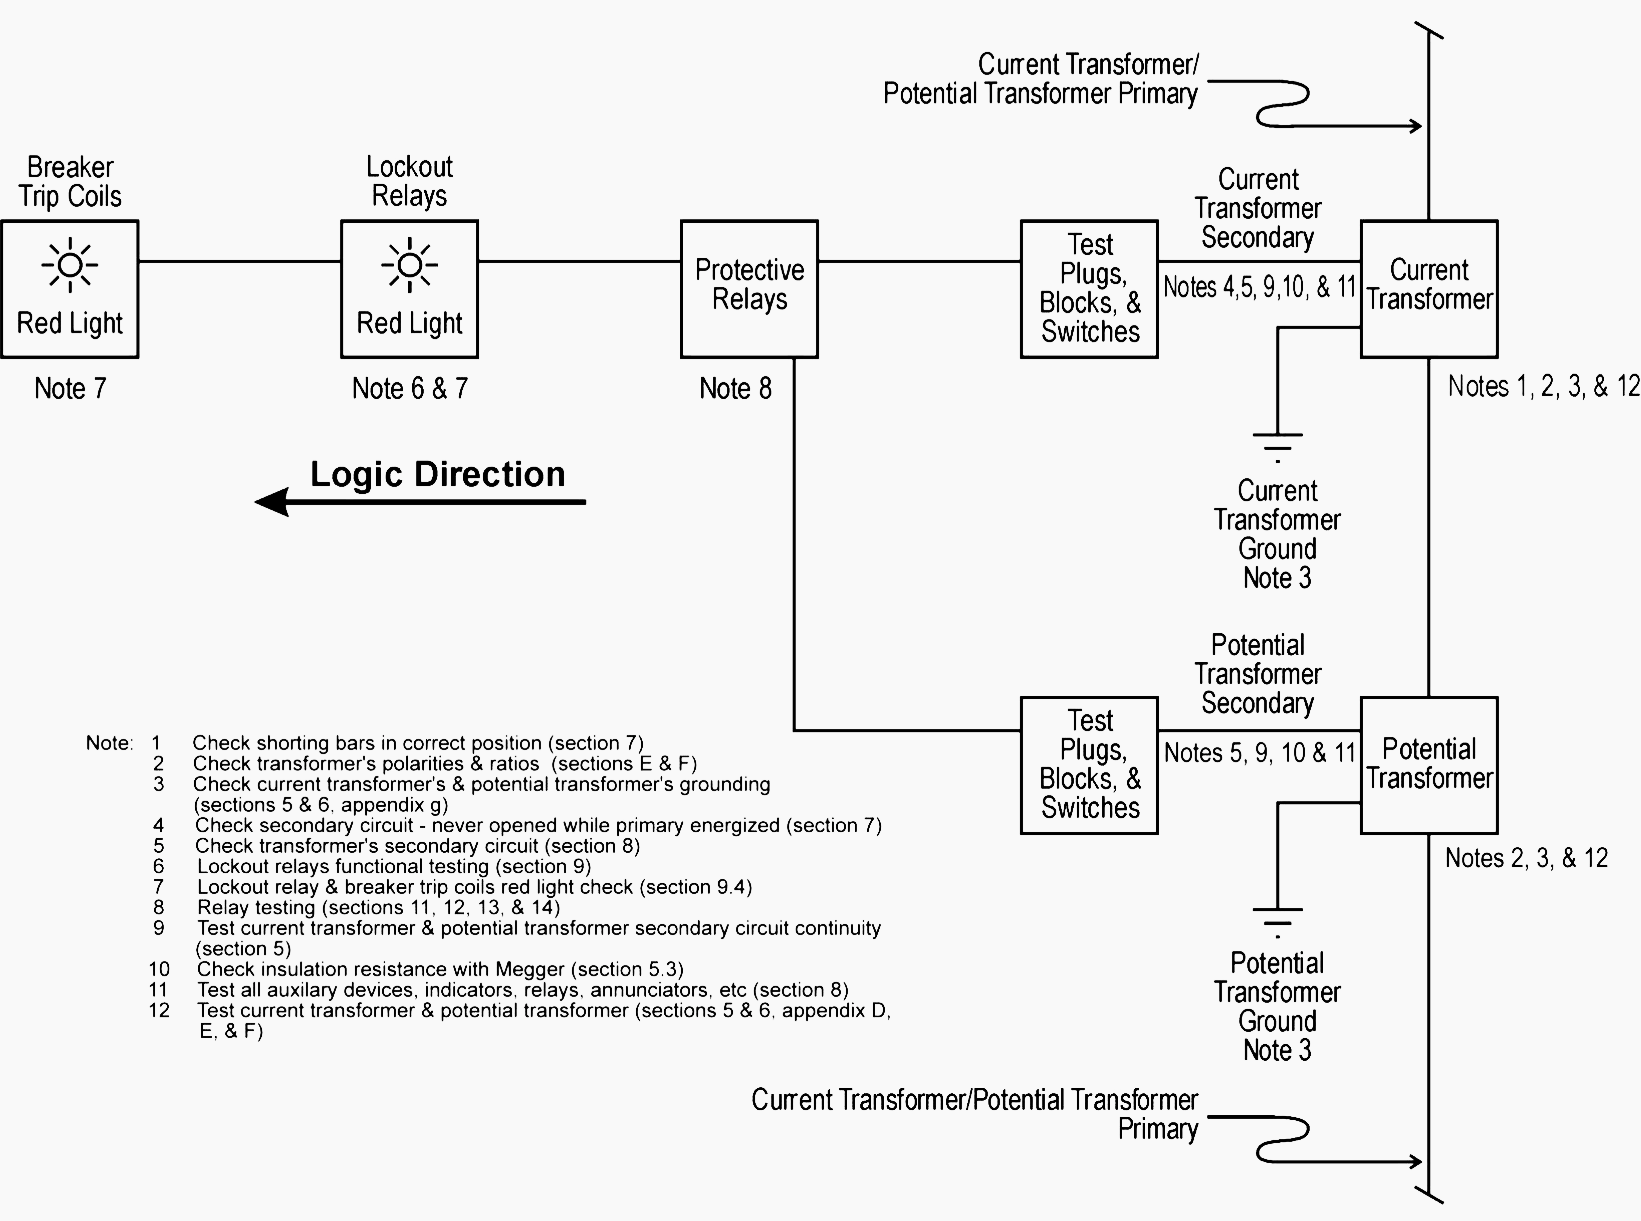 total plant protection system functional testing block diagram [ 1641 x 1221 Pixel ]